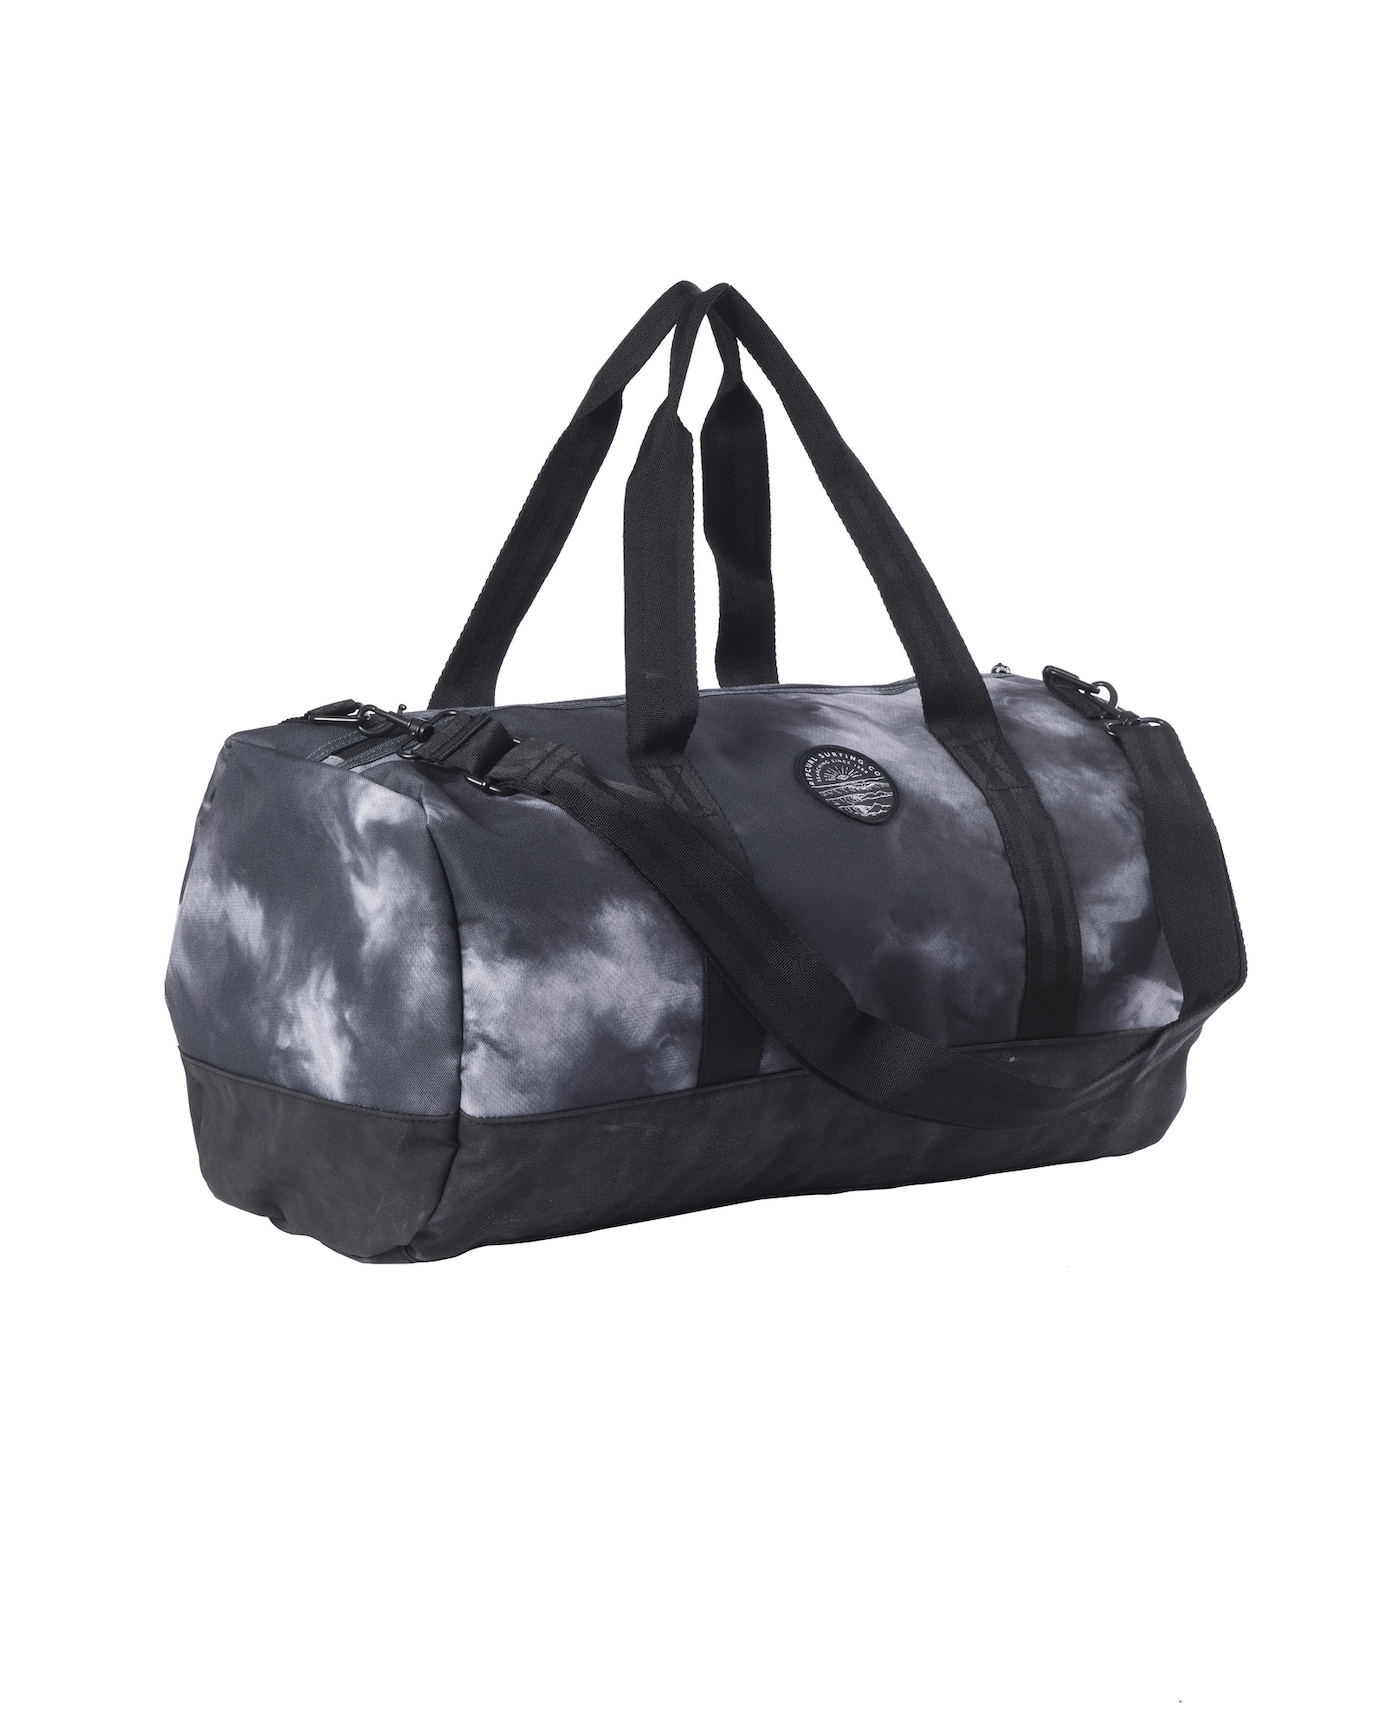 Cestovná taška Rip Curl TRAVEL BAGS DUFFLE RELOAD